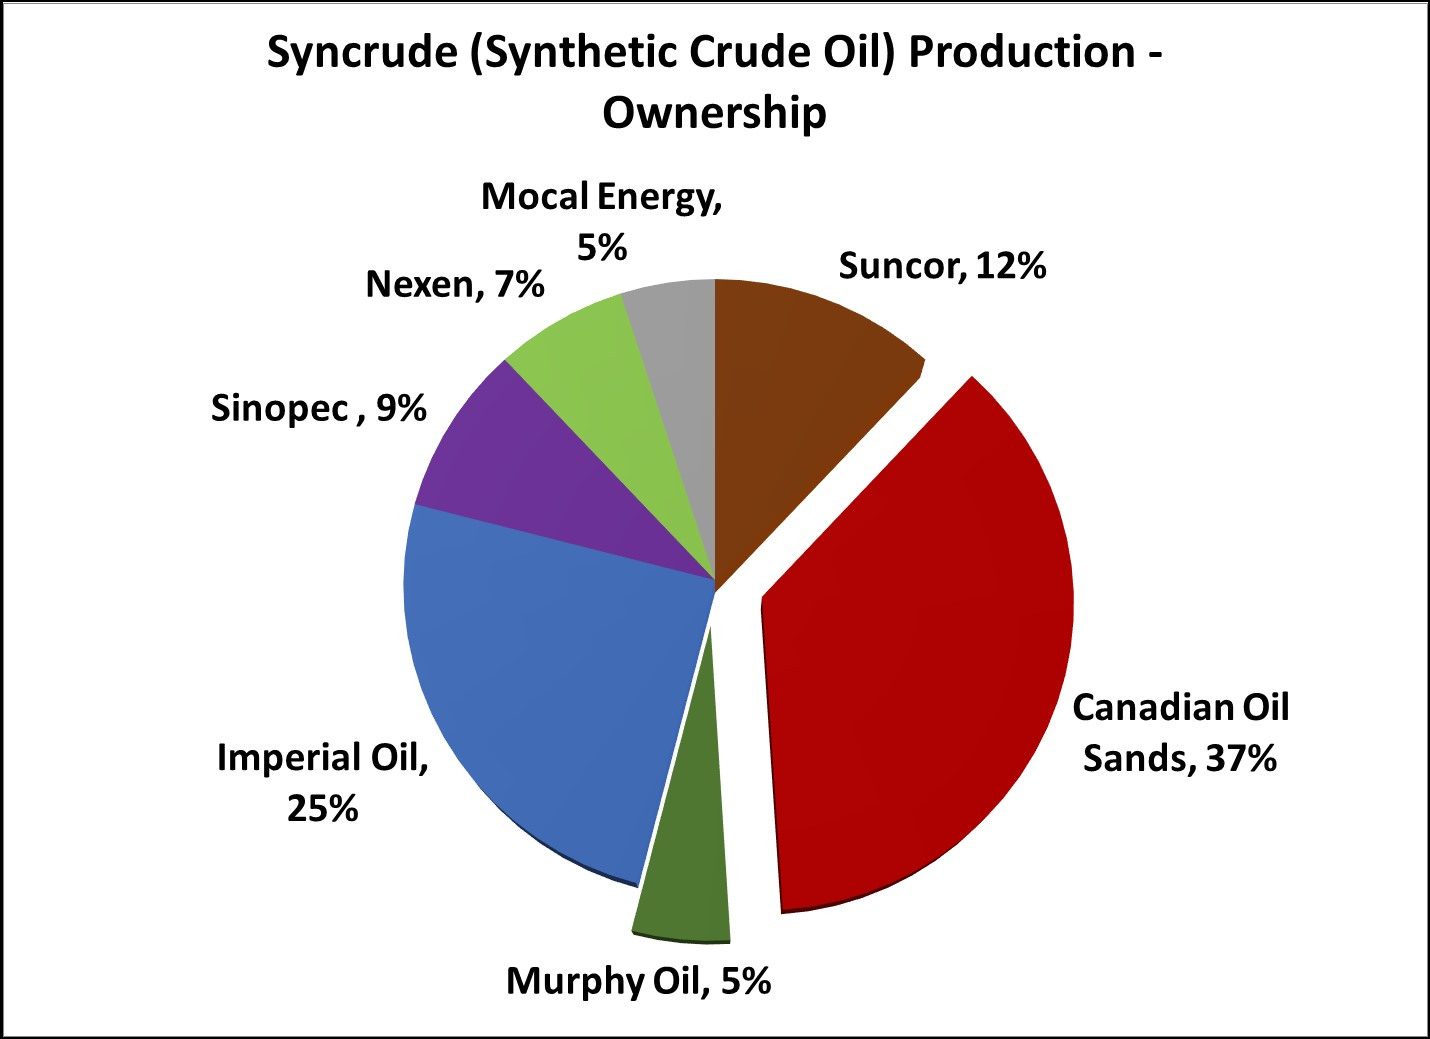 Syncrude Production